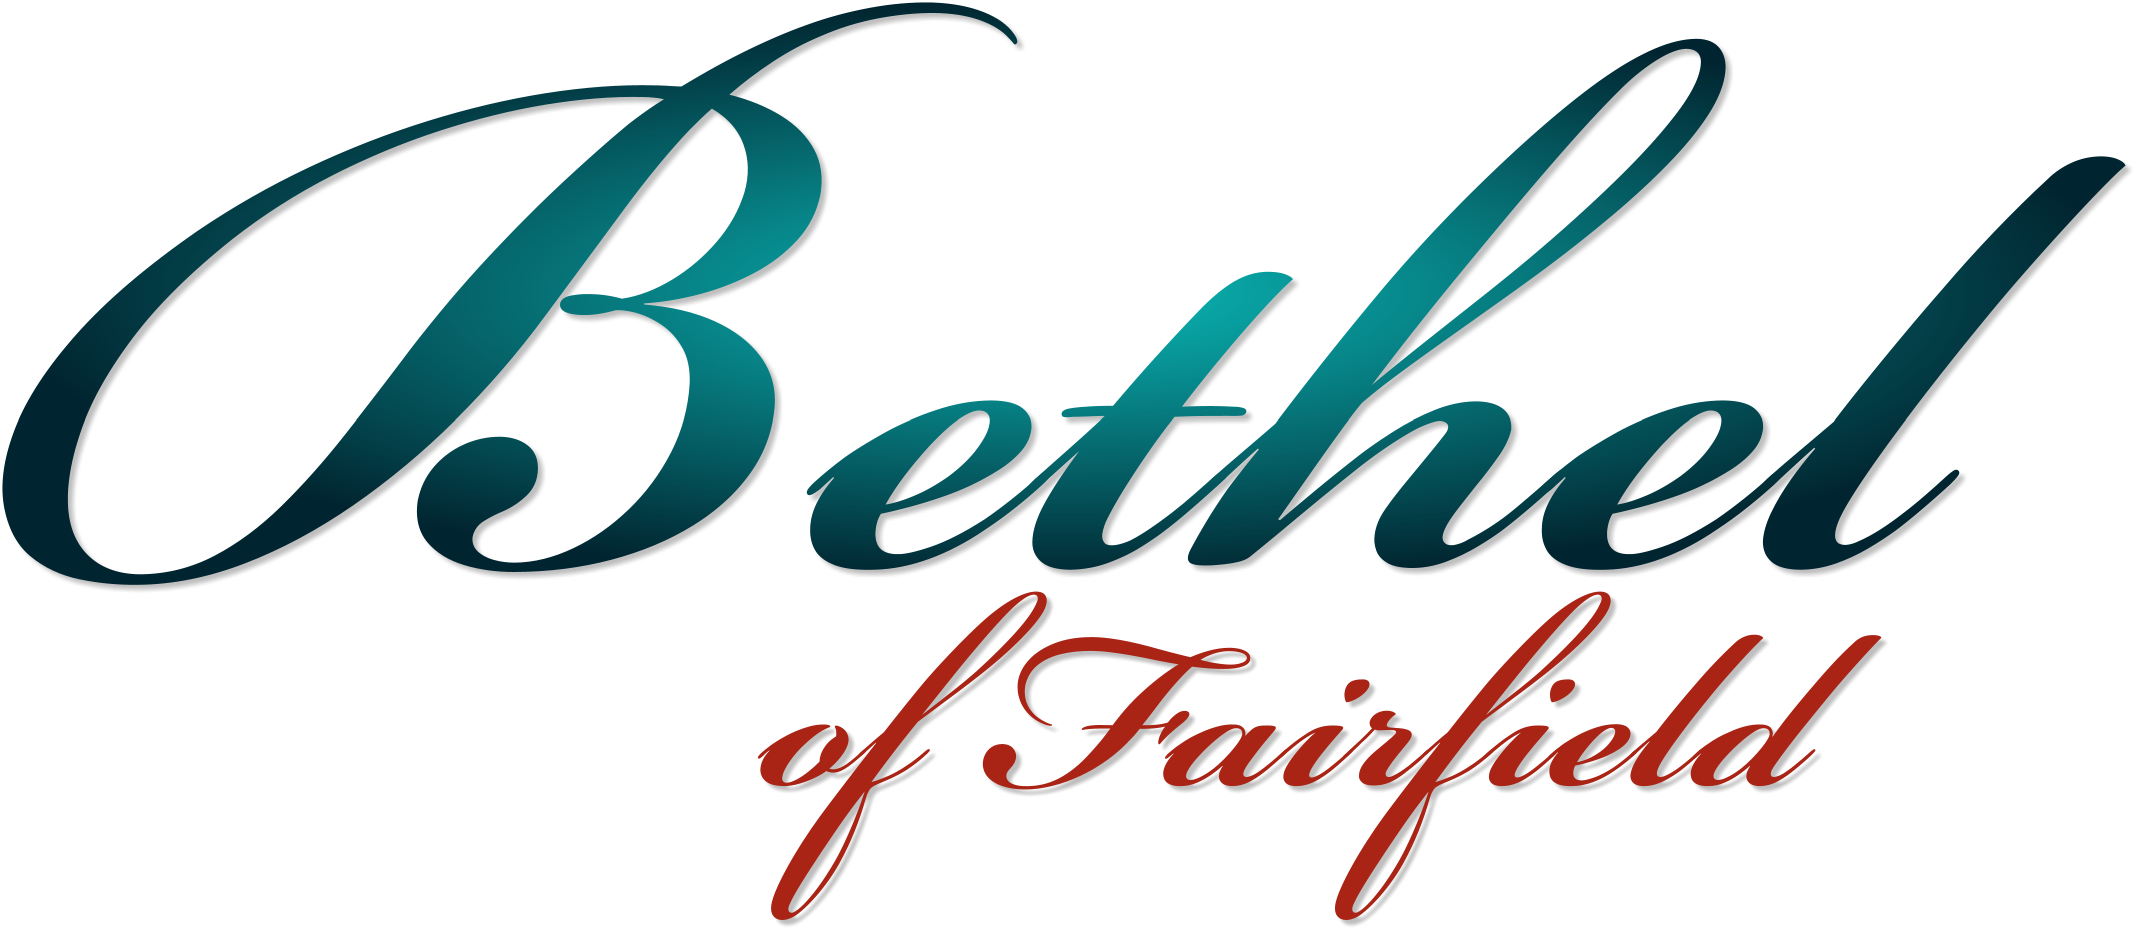 Bethel Community Church of Fairfield